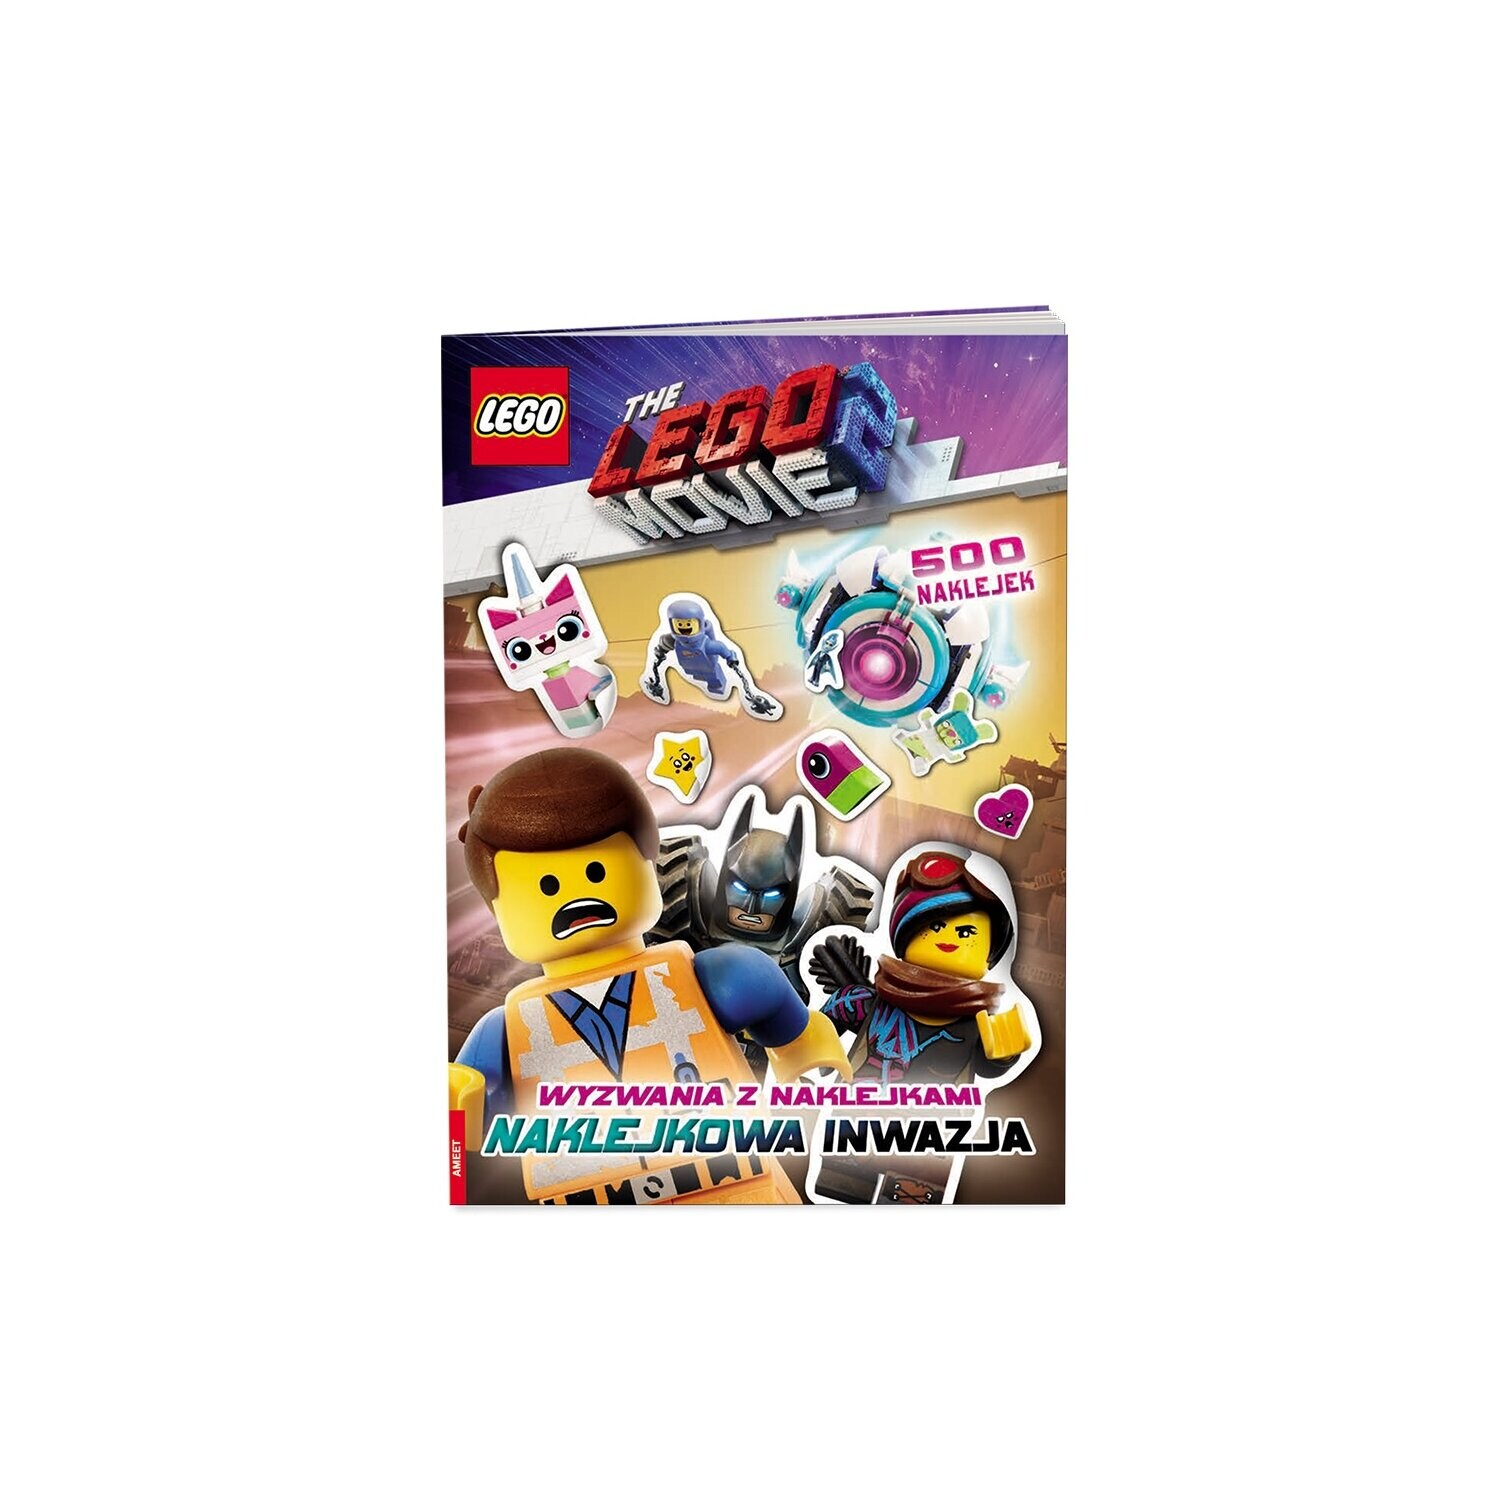 The Lego Movie 2. Wyzwania z naklejkami: Naklejkowa Inwazja